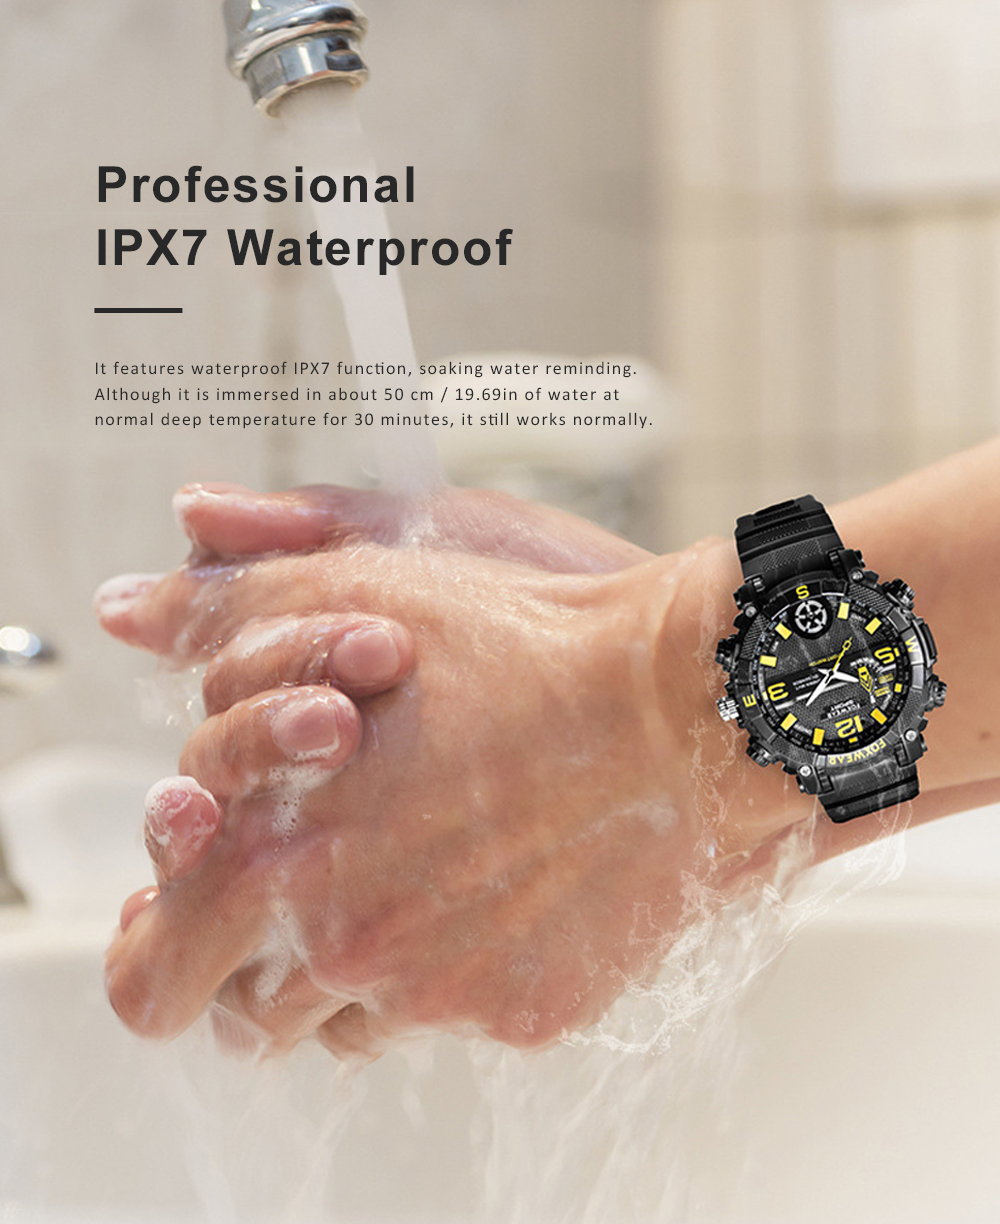 HD Camera Sport Watch IPX7 Waterproof Smart Wifi Watch with LED Lighting Outdoors Sports Watch For Men 3